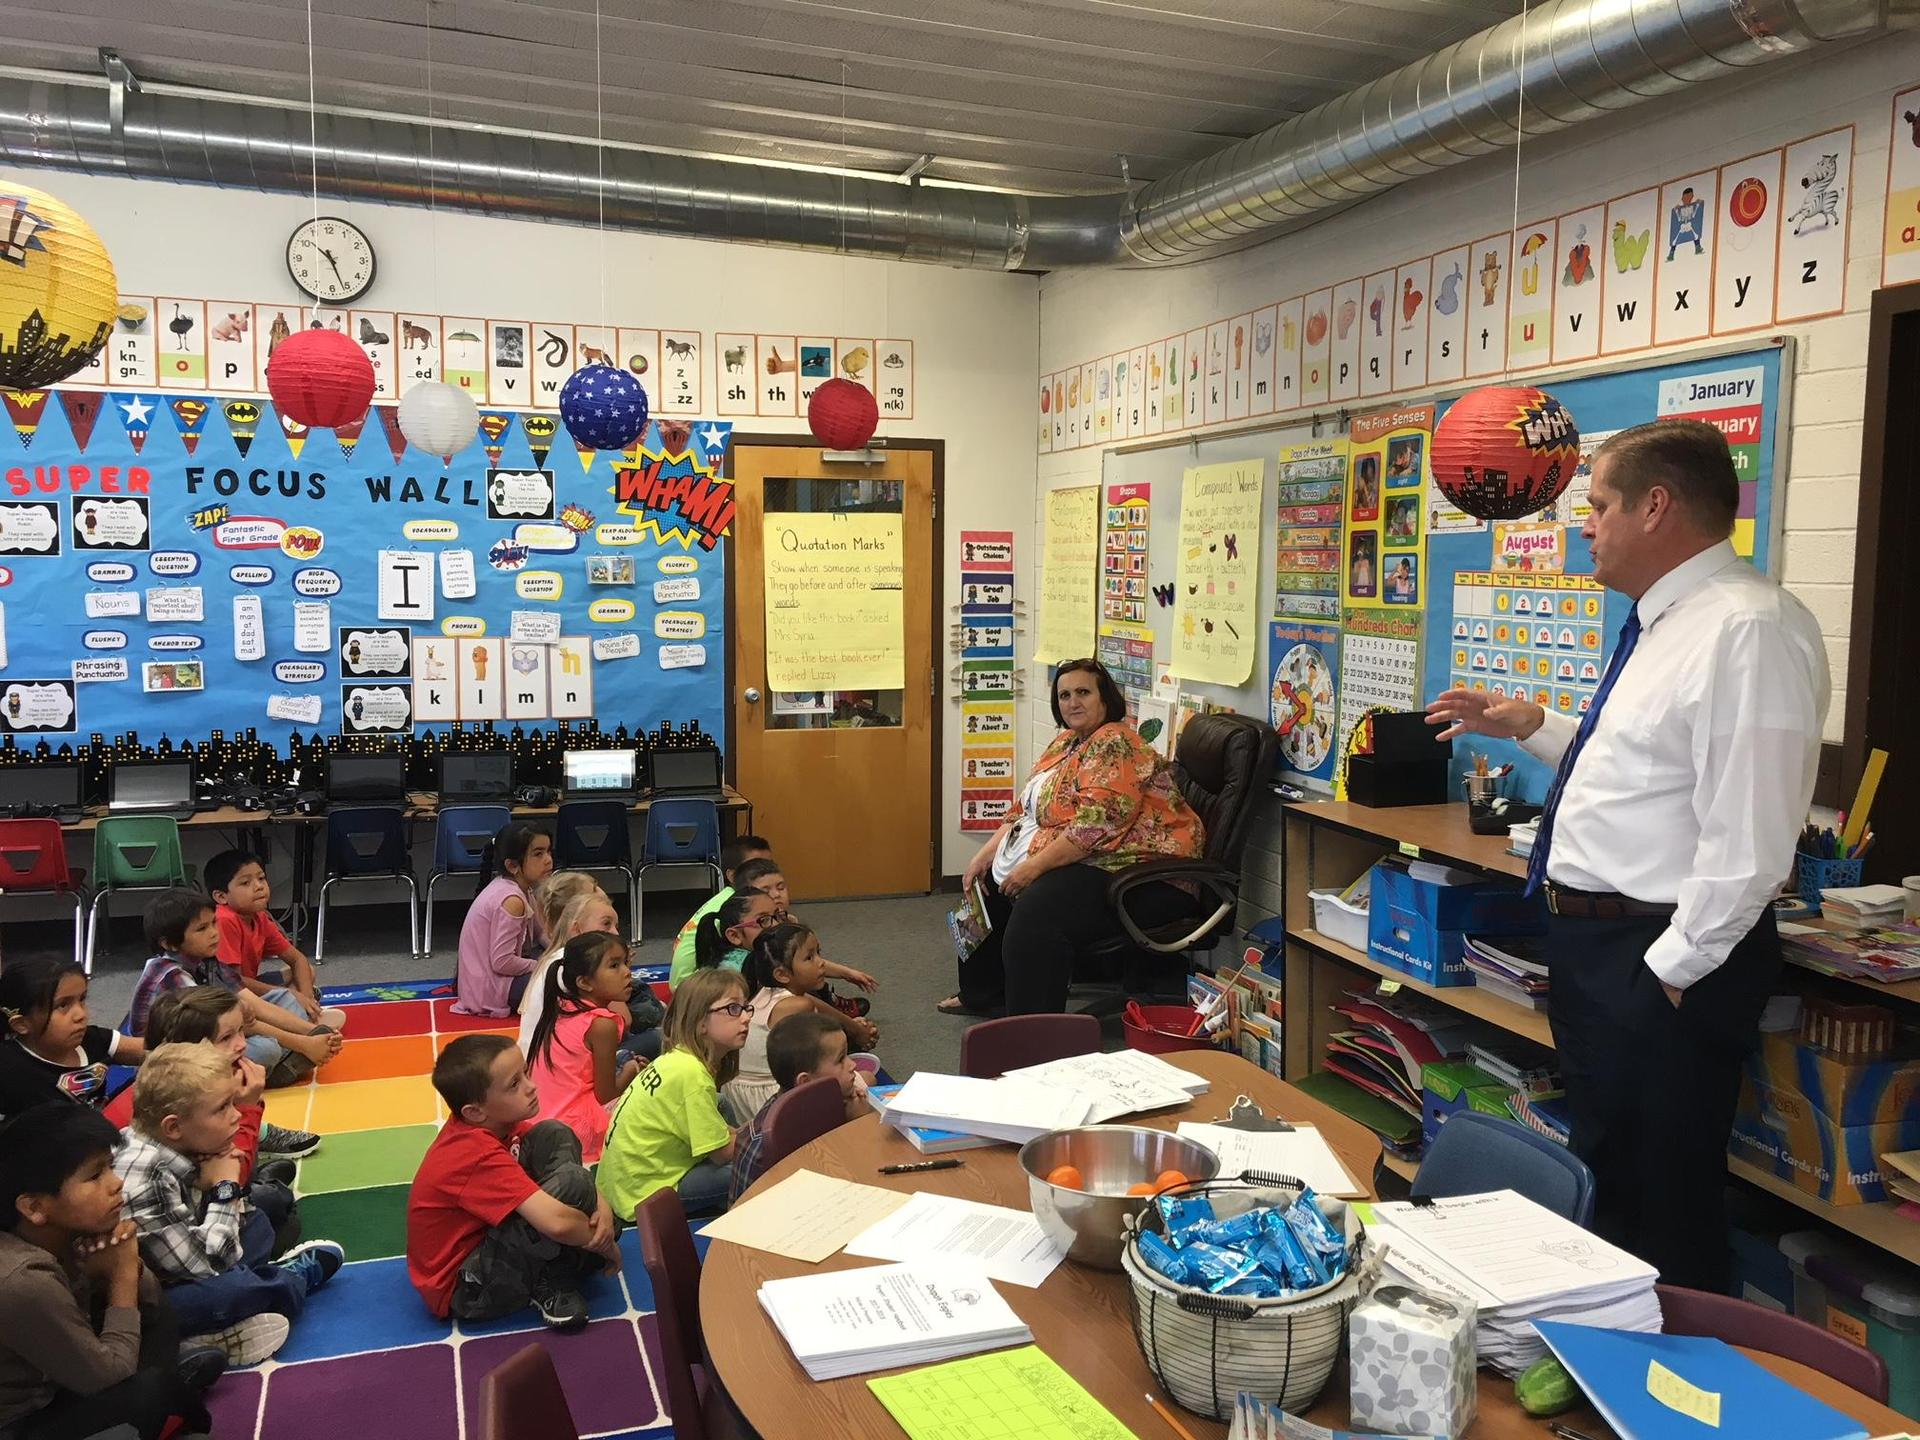 Superintendent talking with students